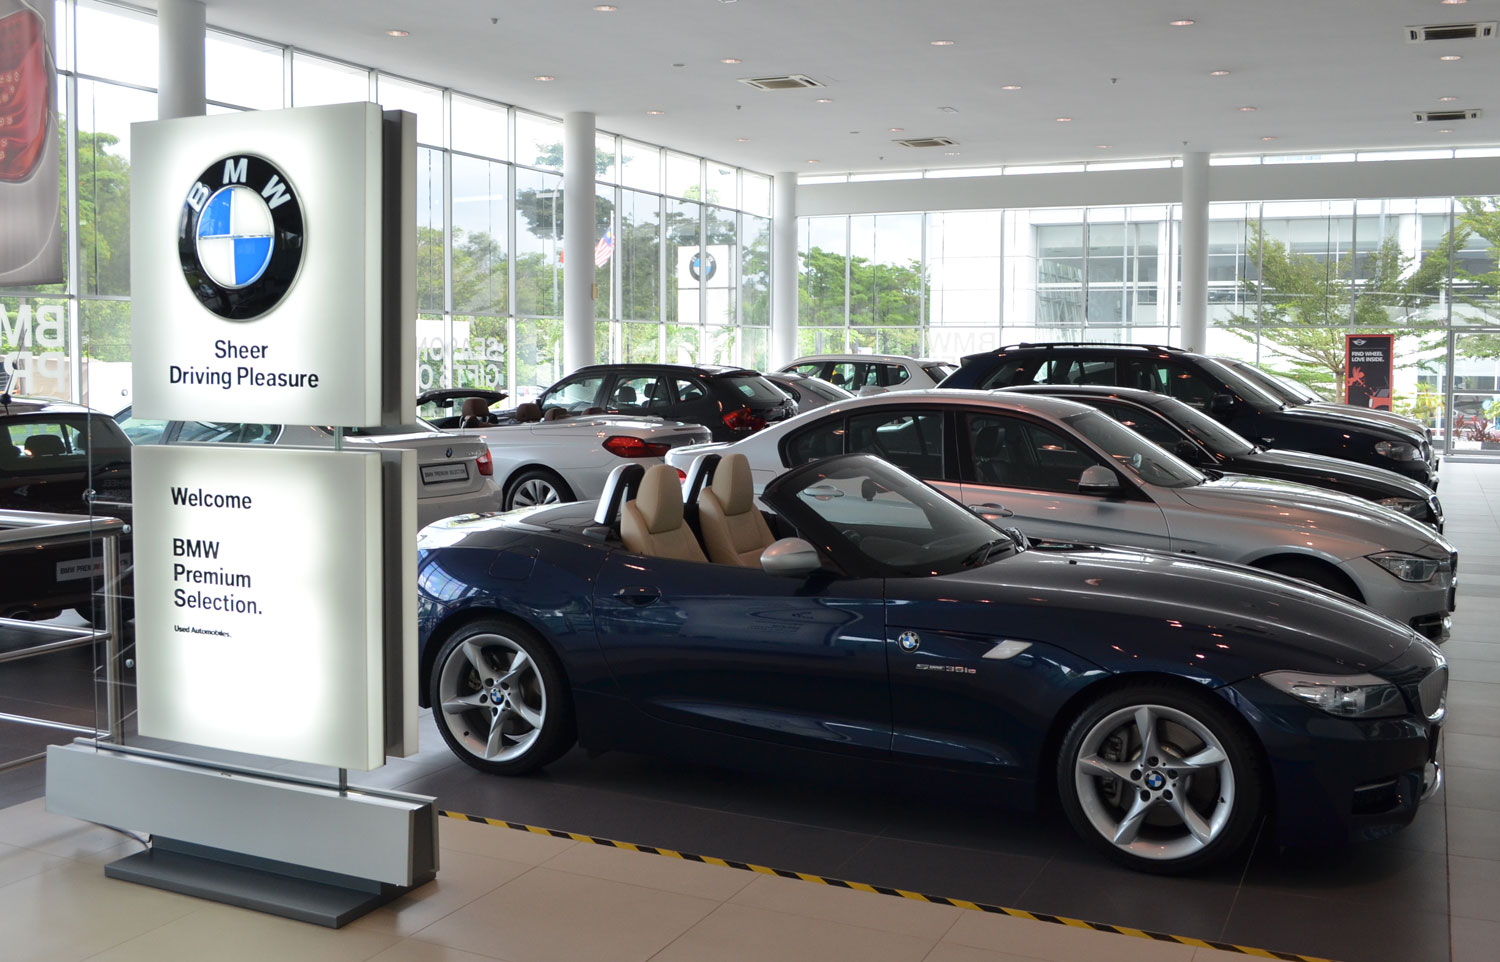 Pre Owned Audi >> BMW Premium Selection certified pre-owned cars at AB Glenmarie